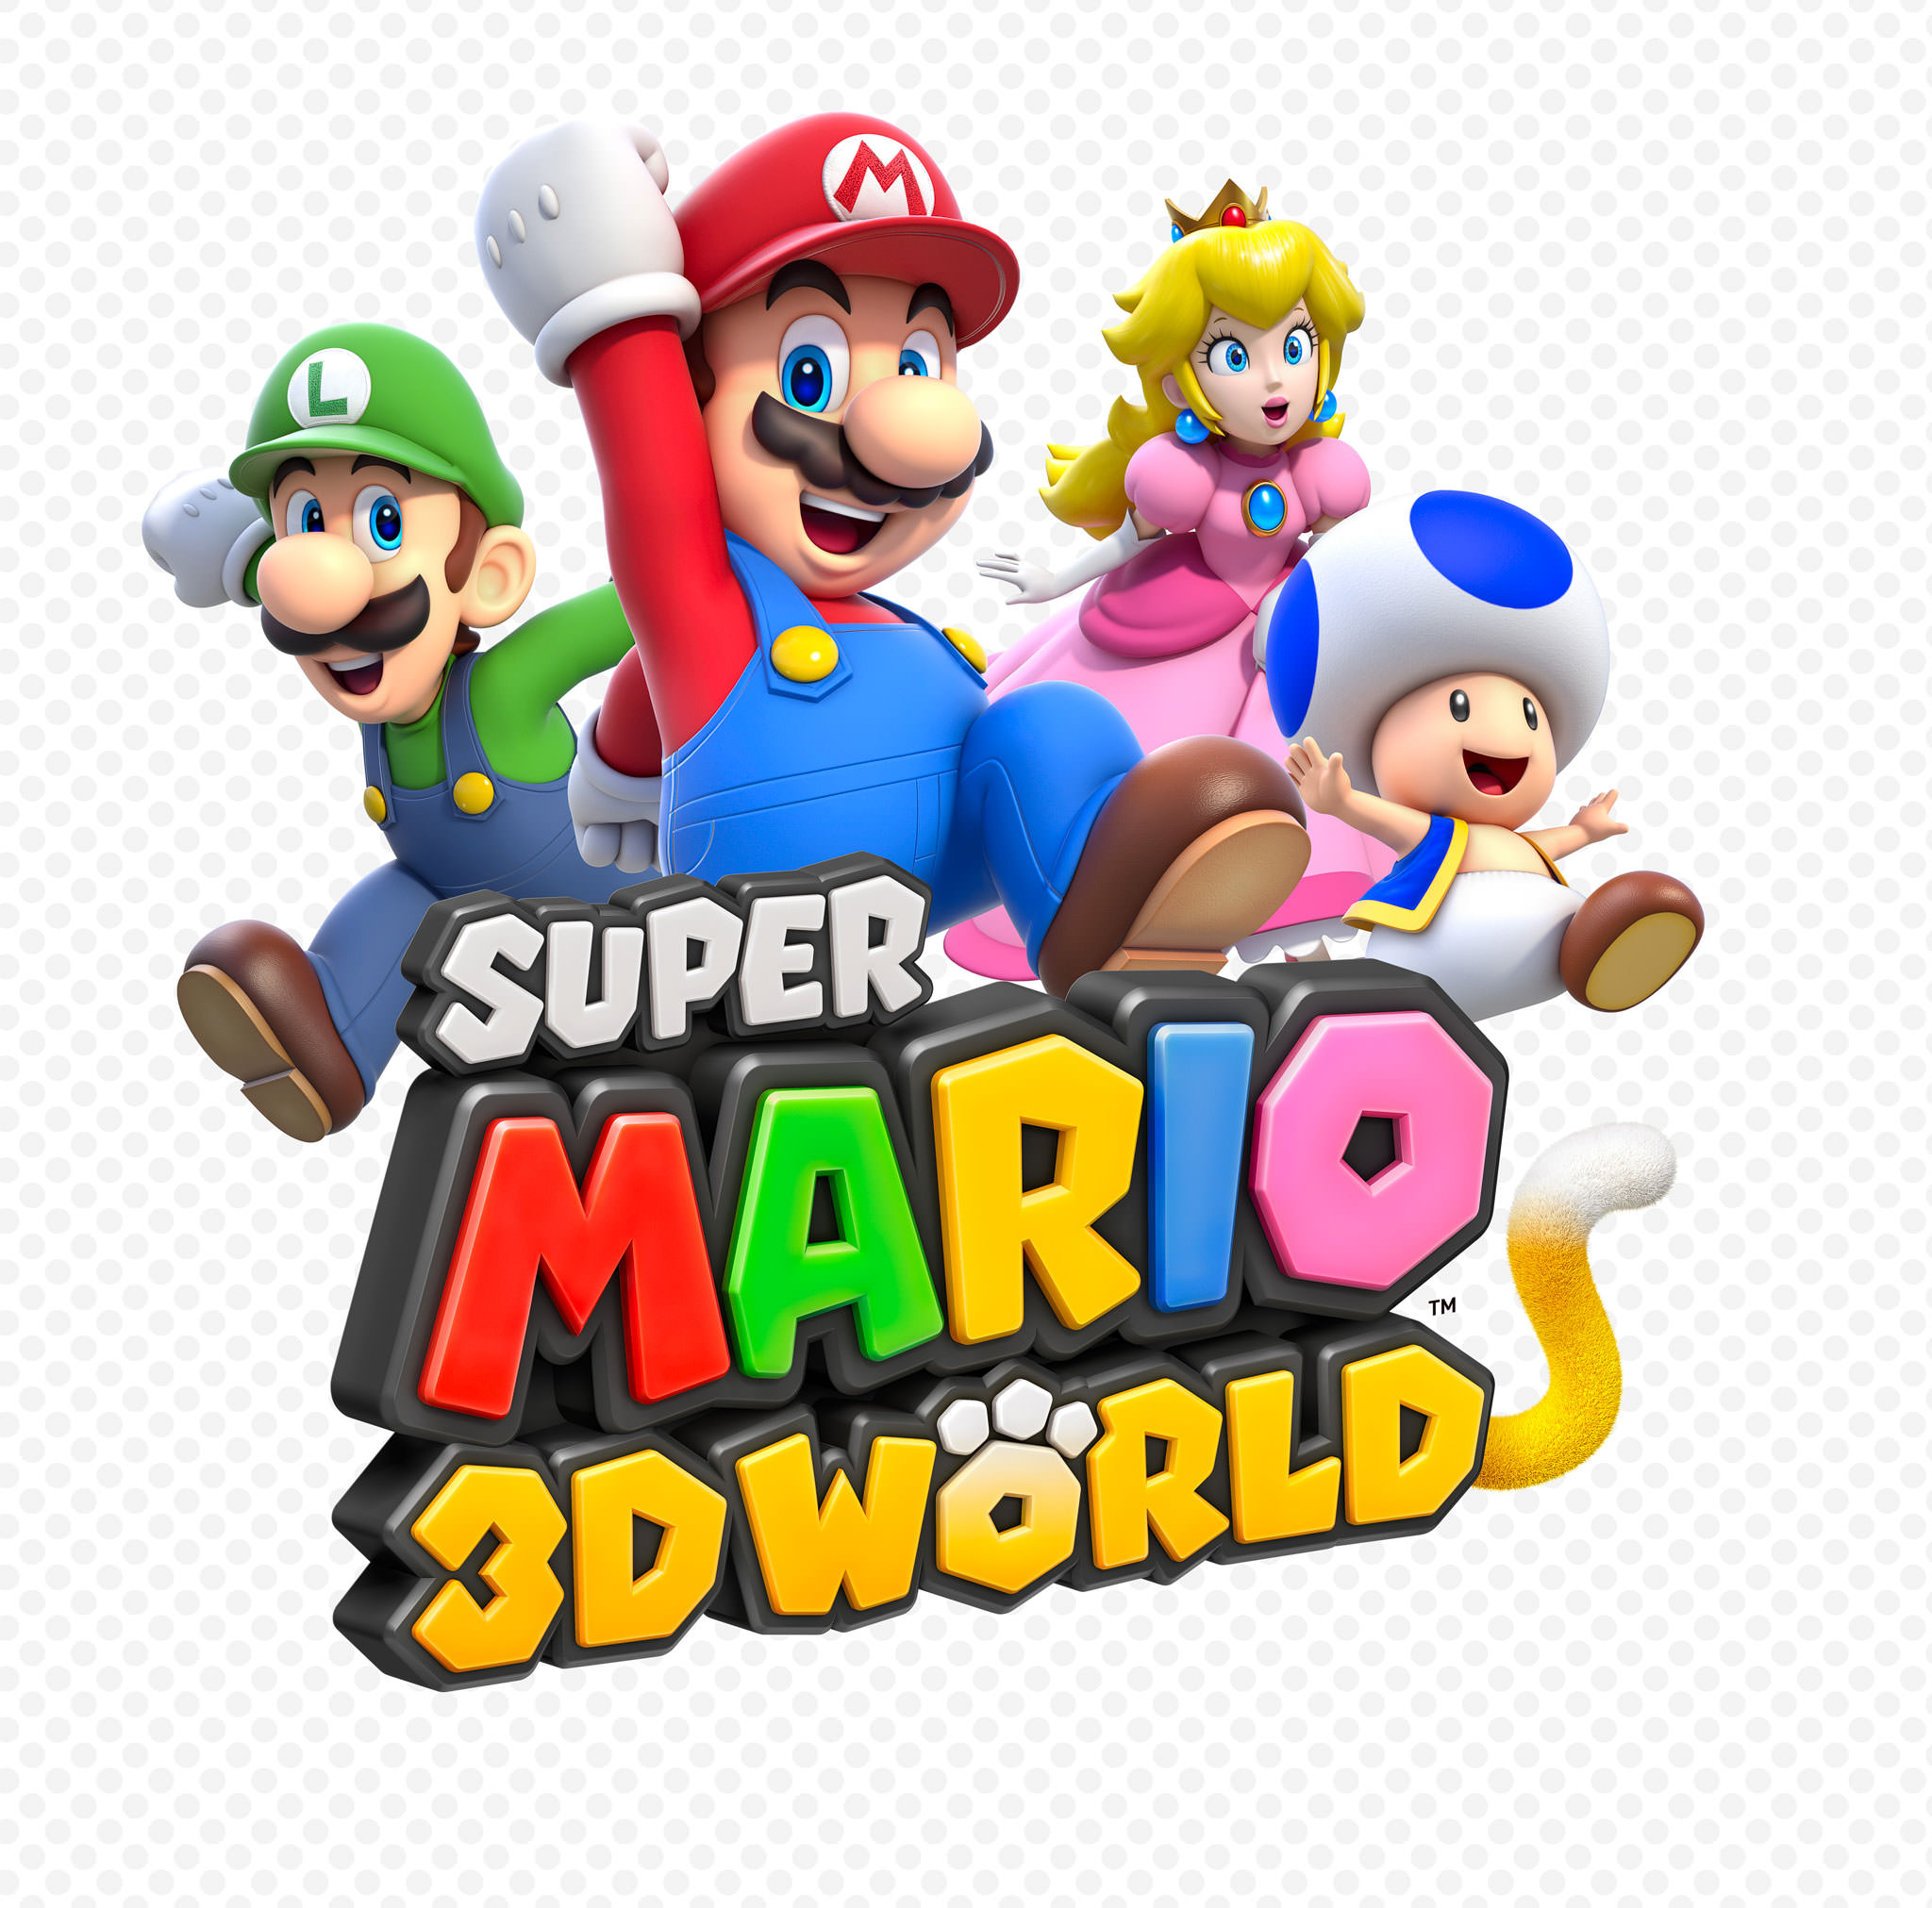 7_WiiU_Super-Mario-3D-World_Artwork_20